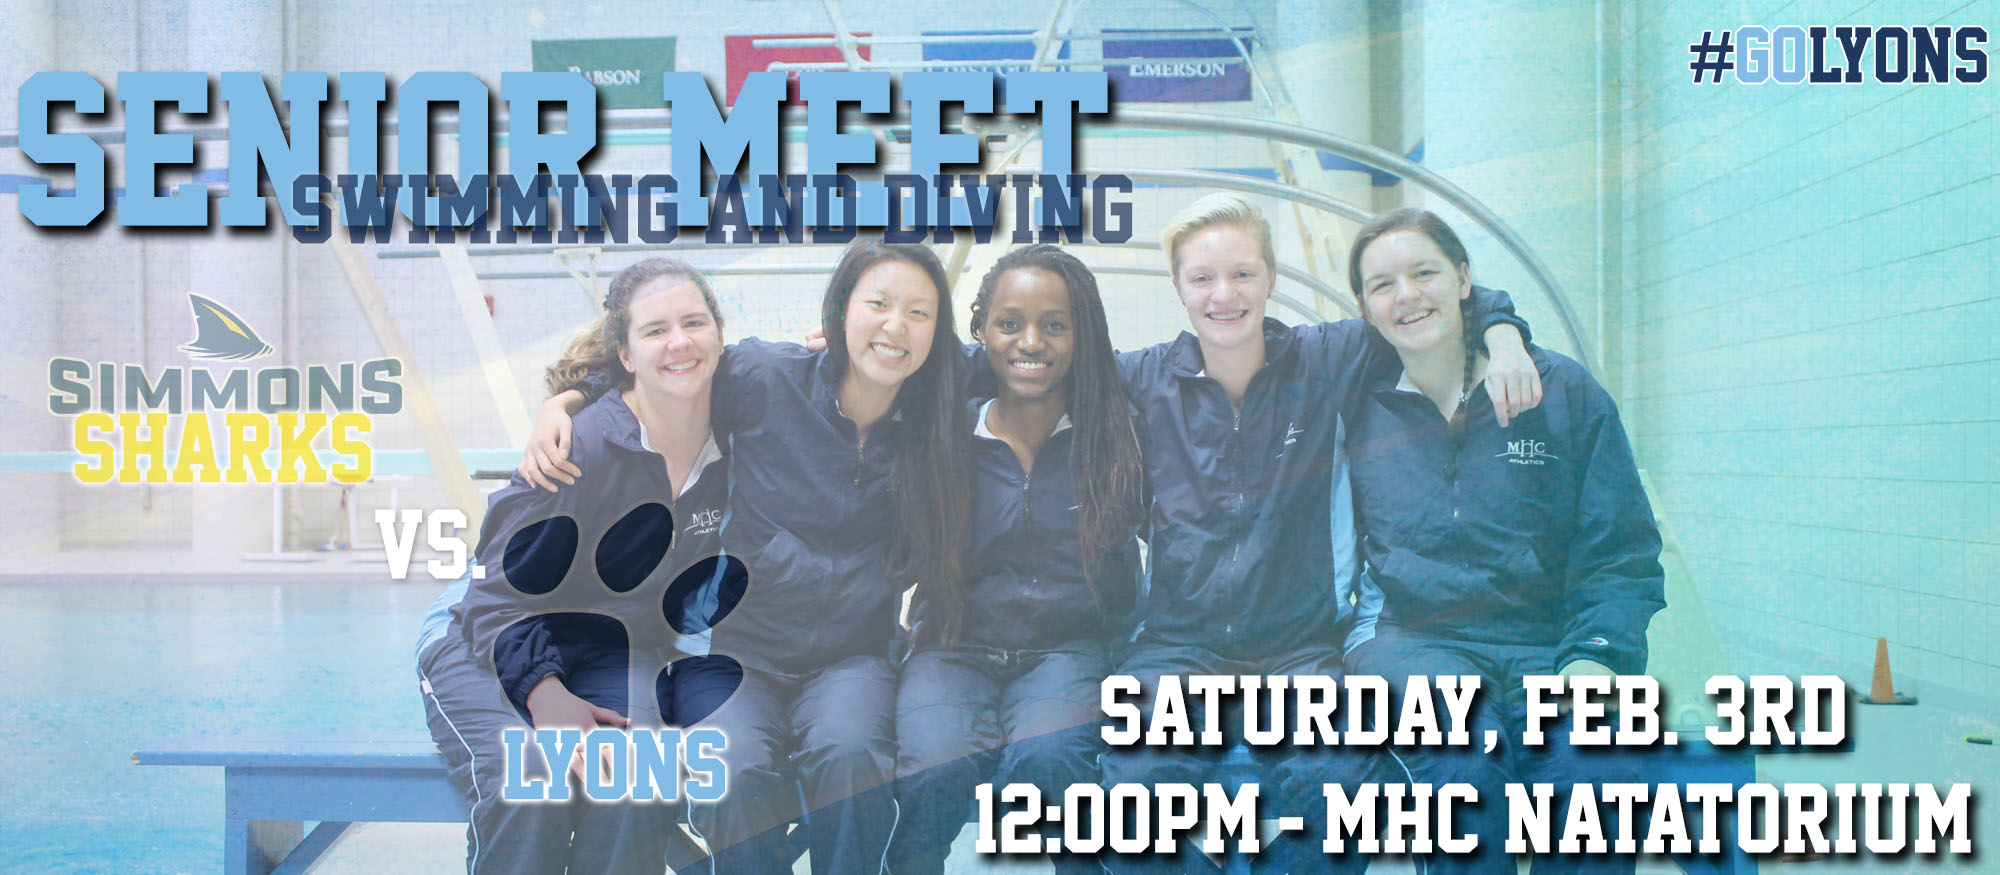 Graphic advertising the Saturday, February 2nd Lyons swimming & diving home meet at 12pm against Simmons. The event also marks Senior Day for the Lyons five graduating seniors.